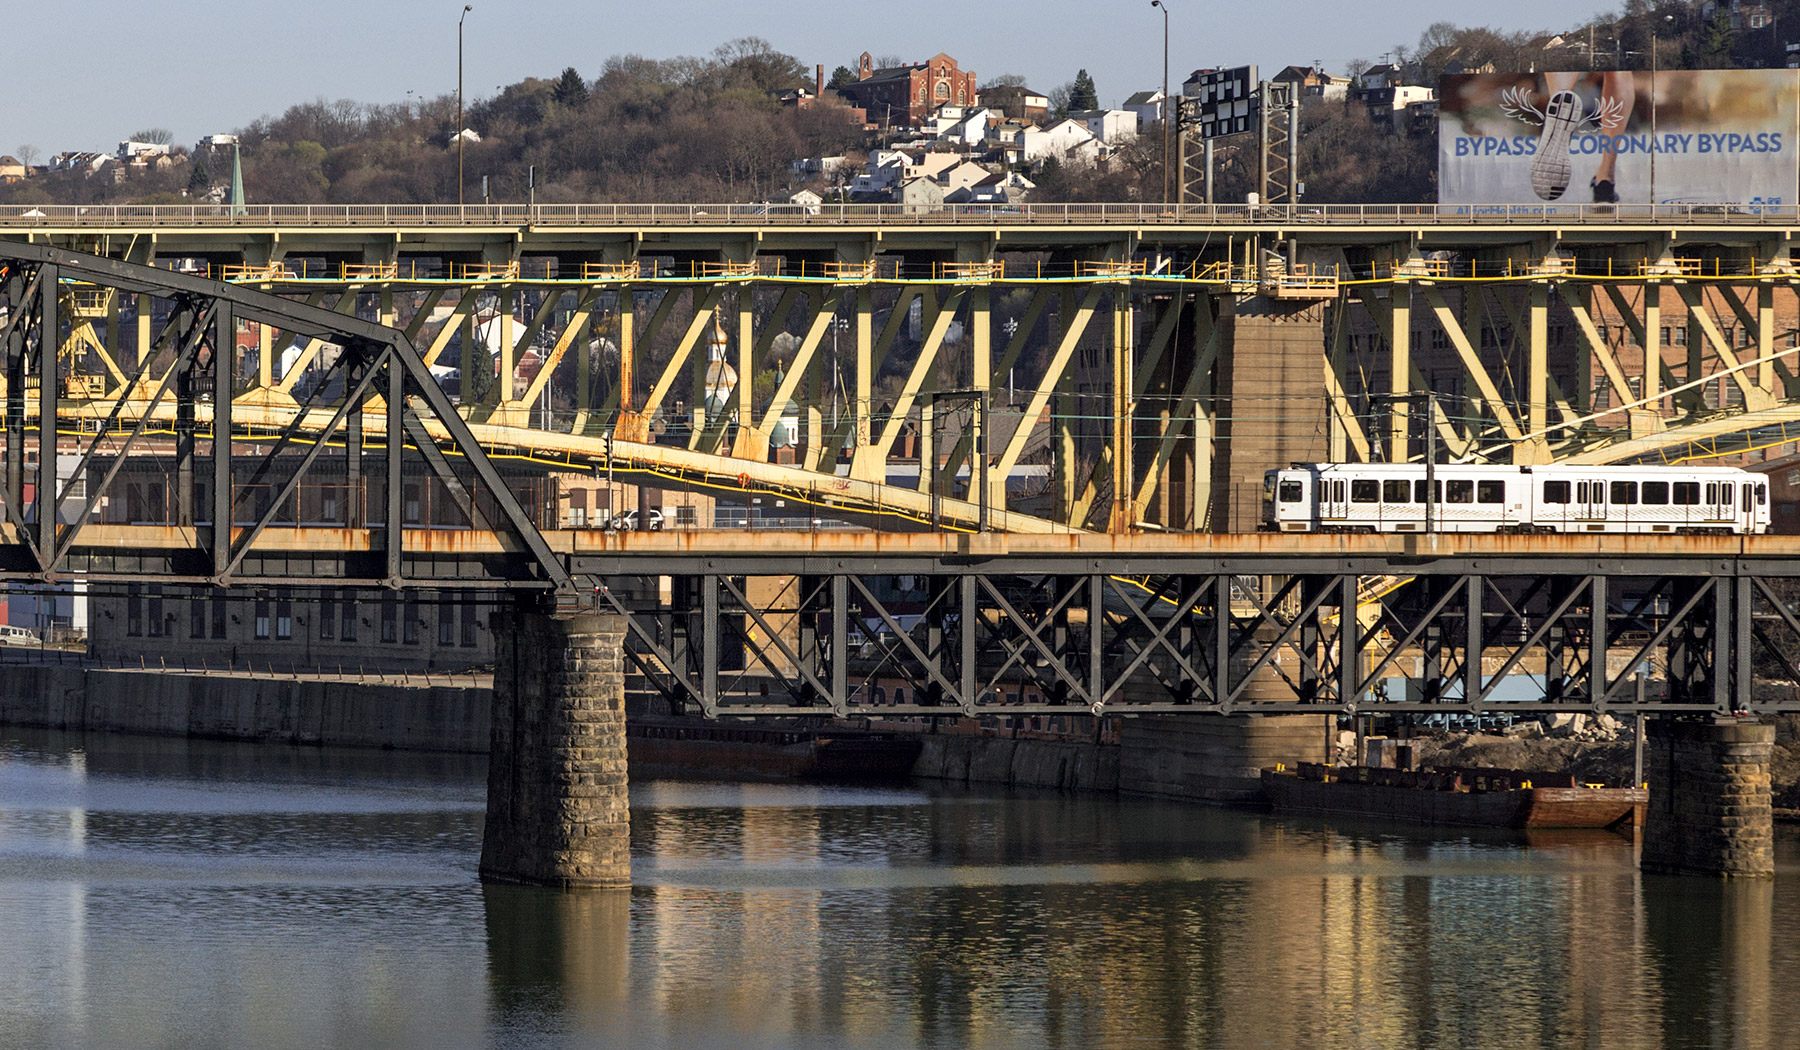 20160405. Crossing Pittsburgh's Monongahela River on a Port Auth